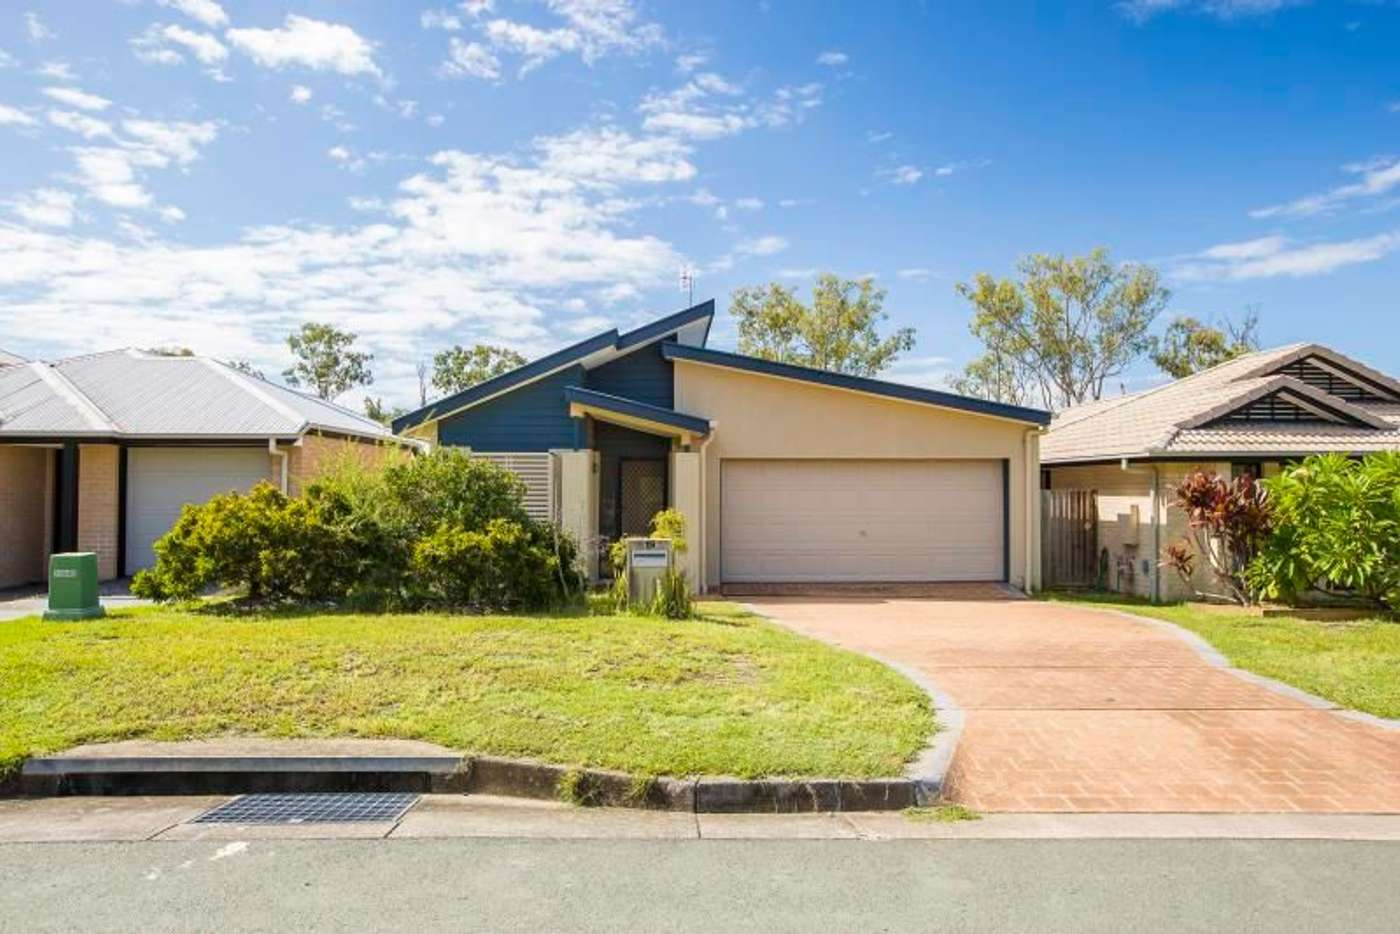 Main view of Homely house listing, 19 Talpa Street, Coomera QLD 4209